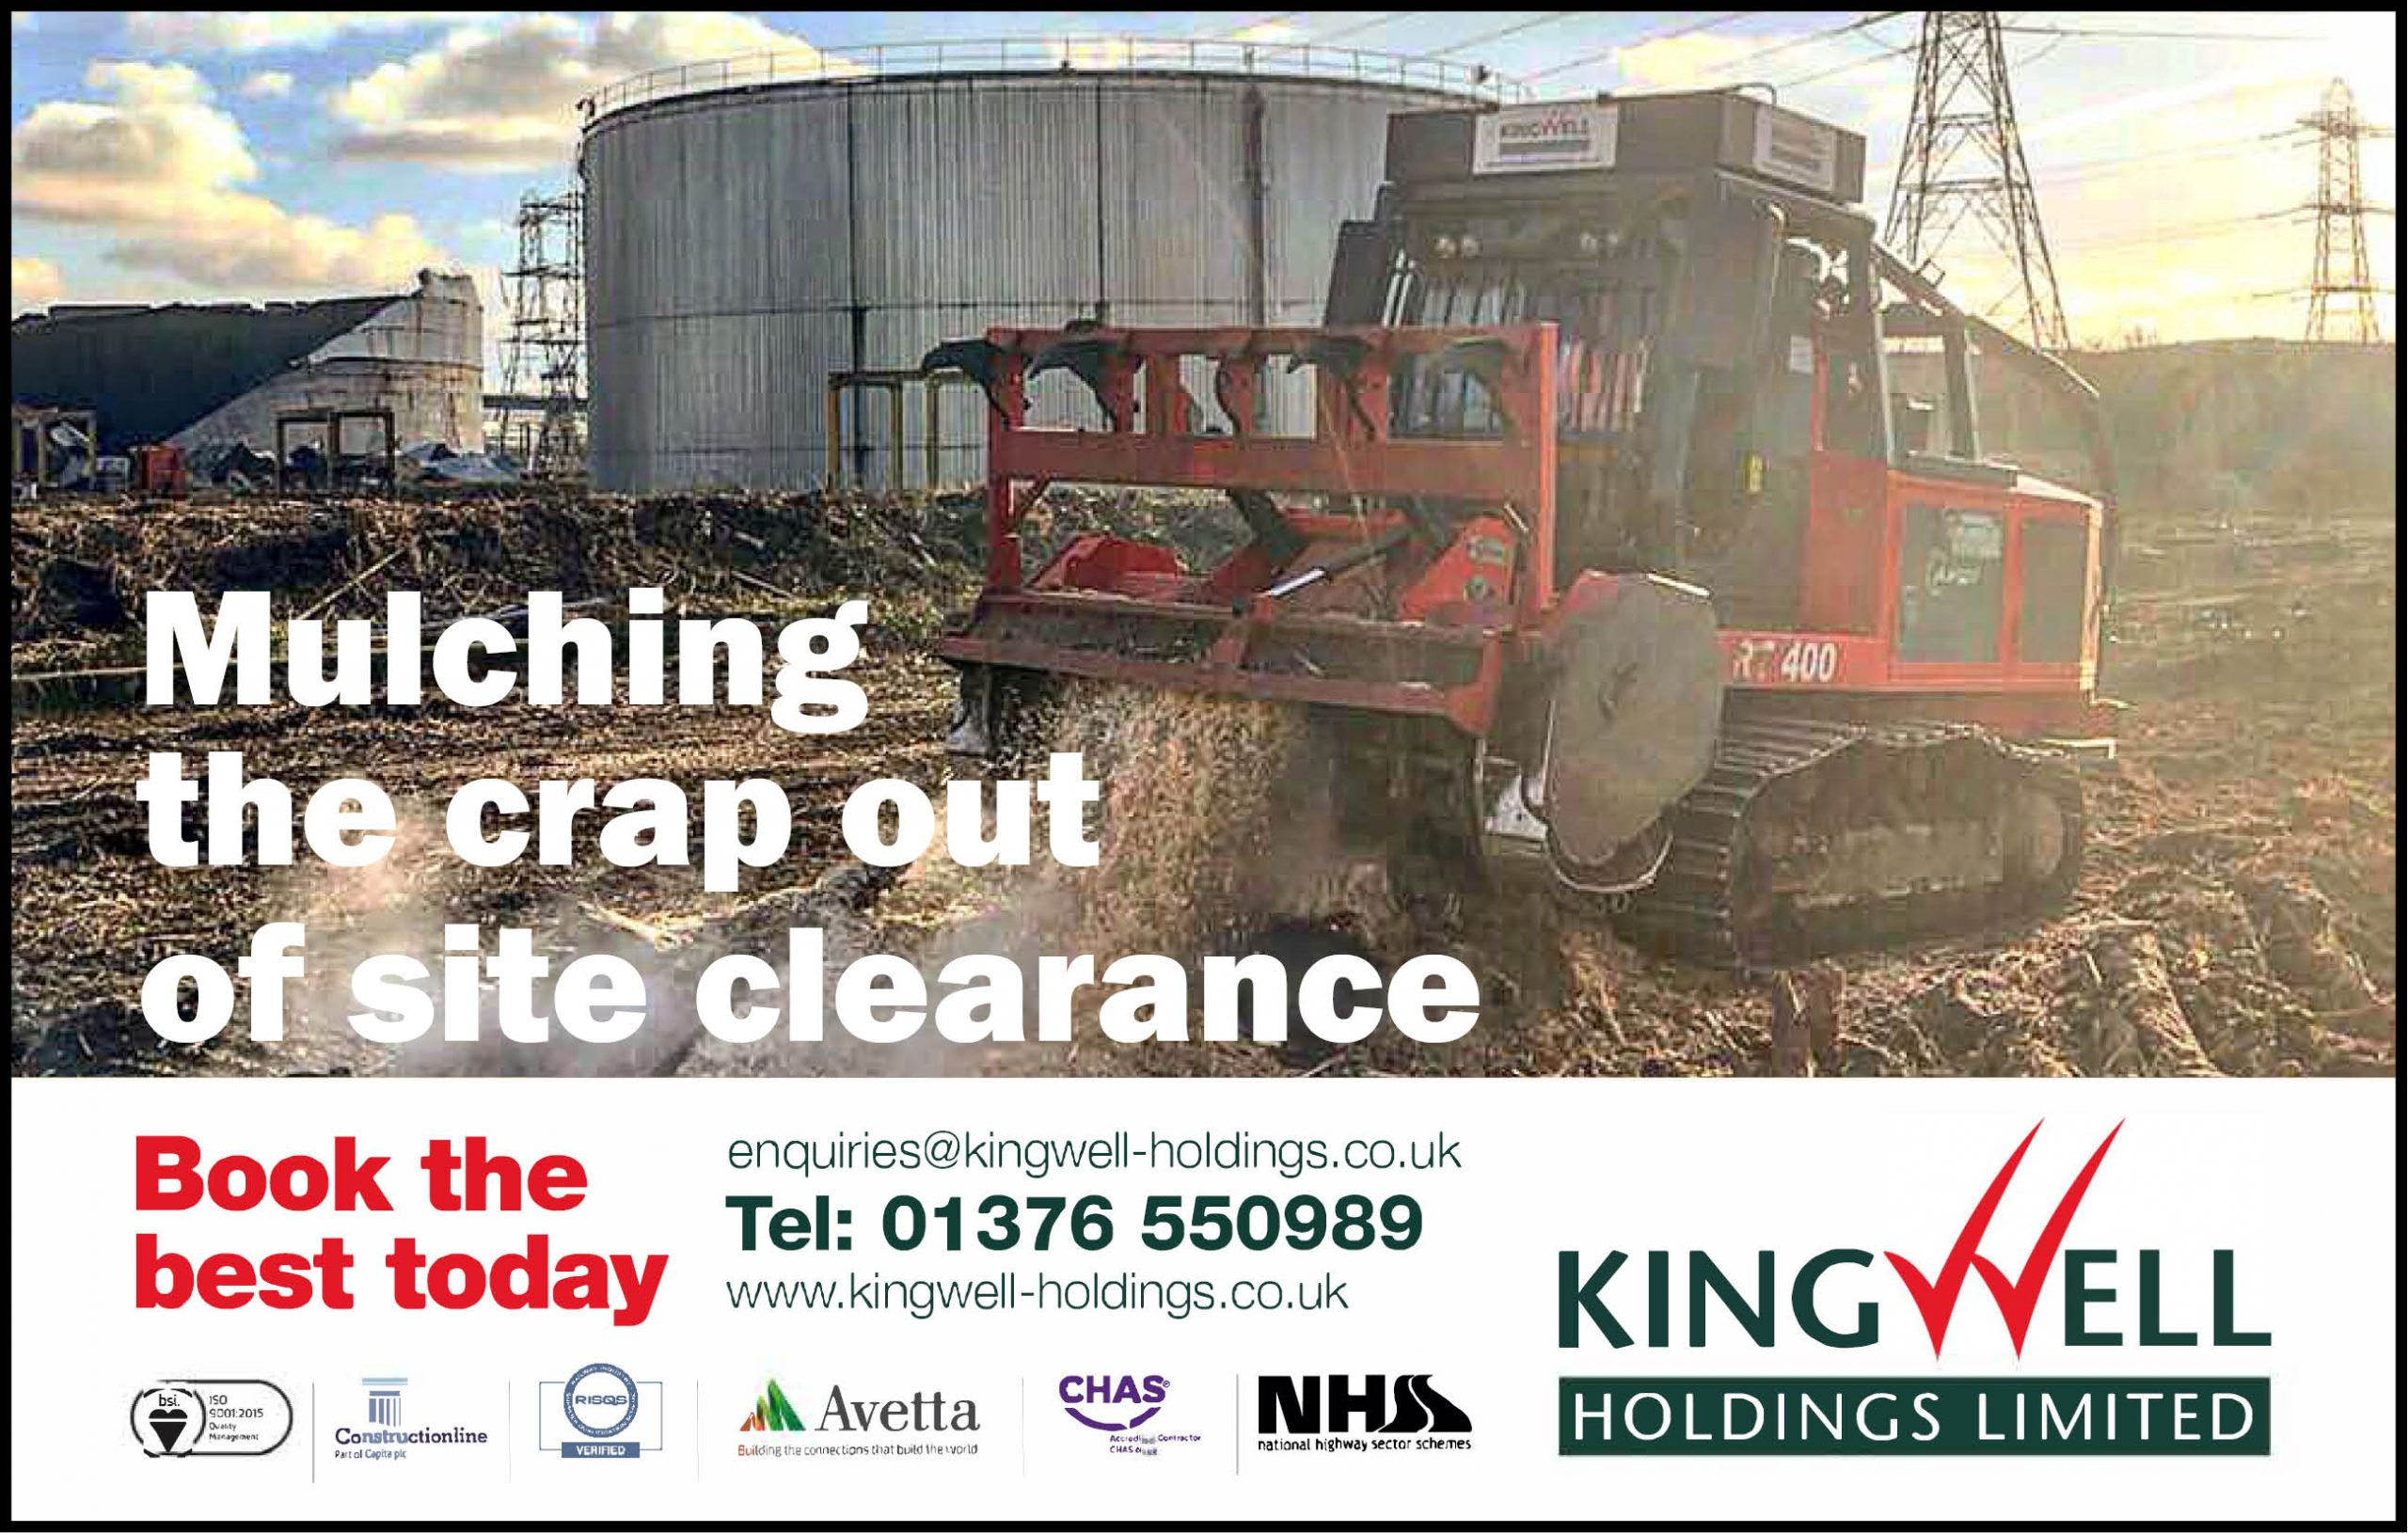 Kingwell Holding Advert